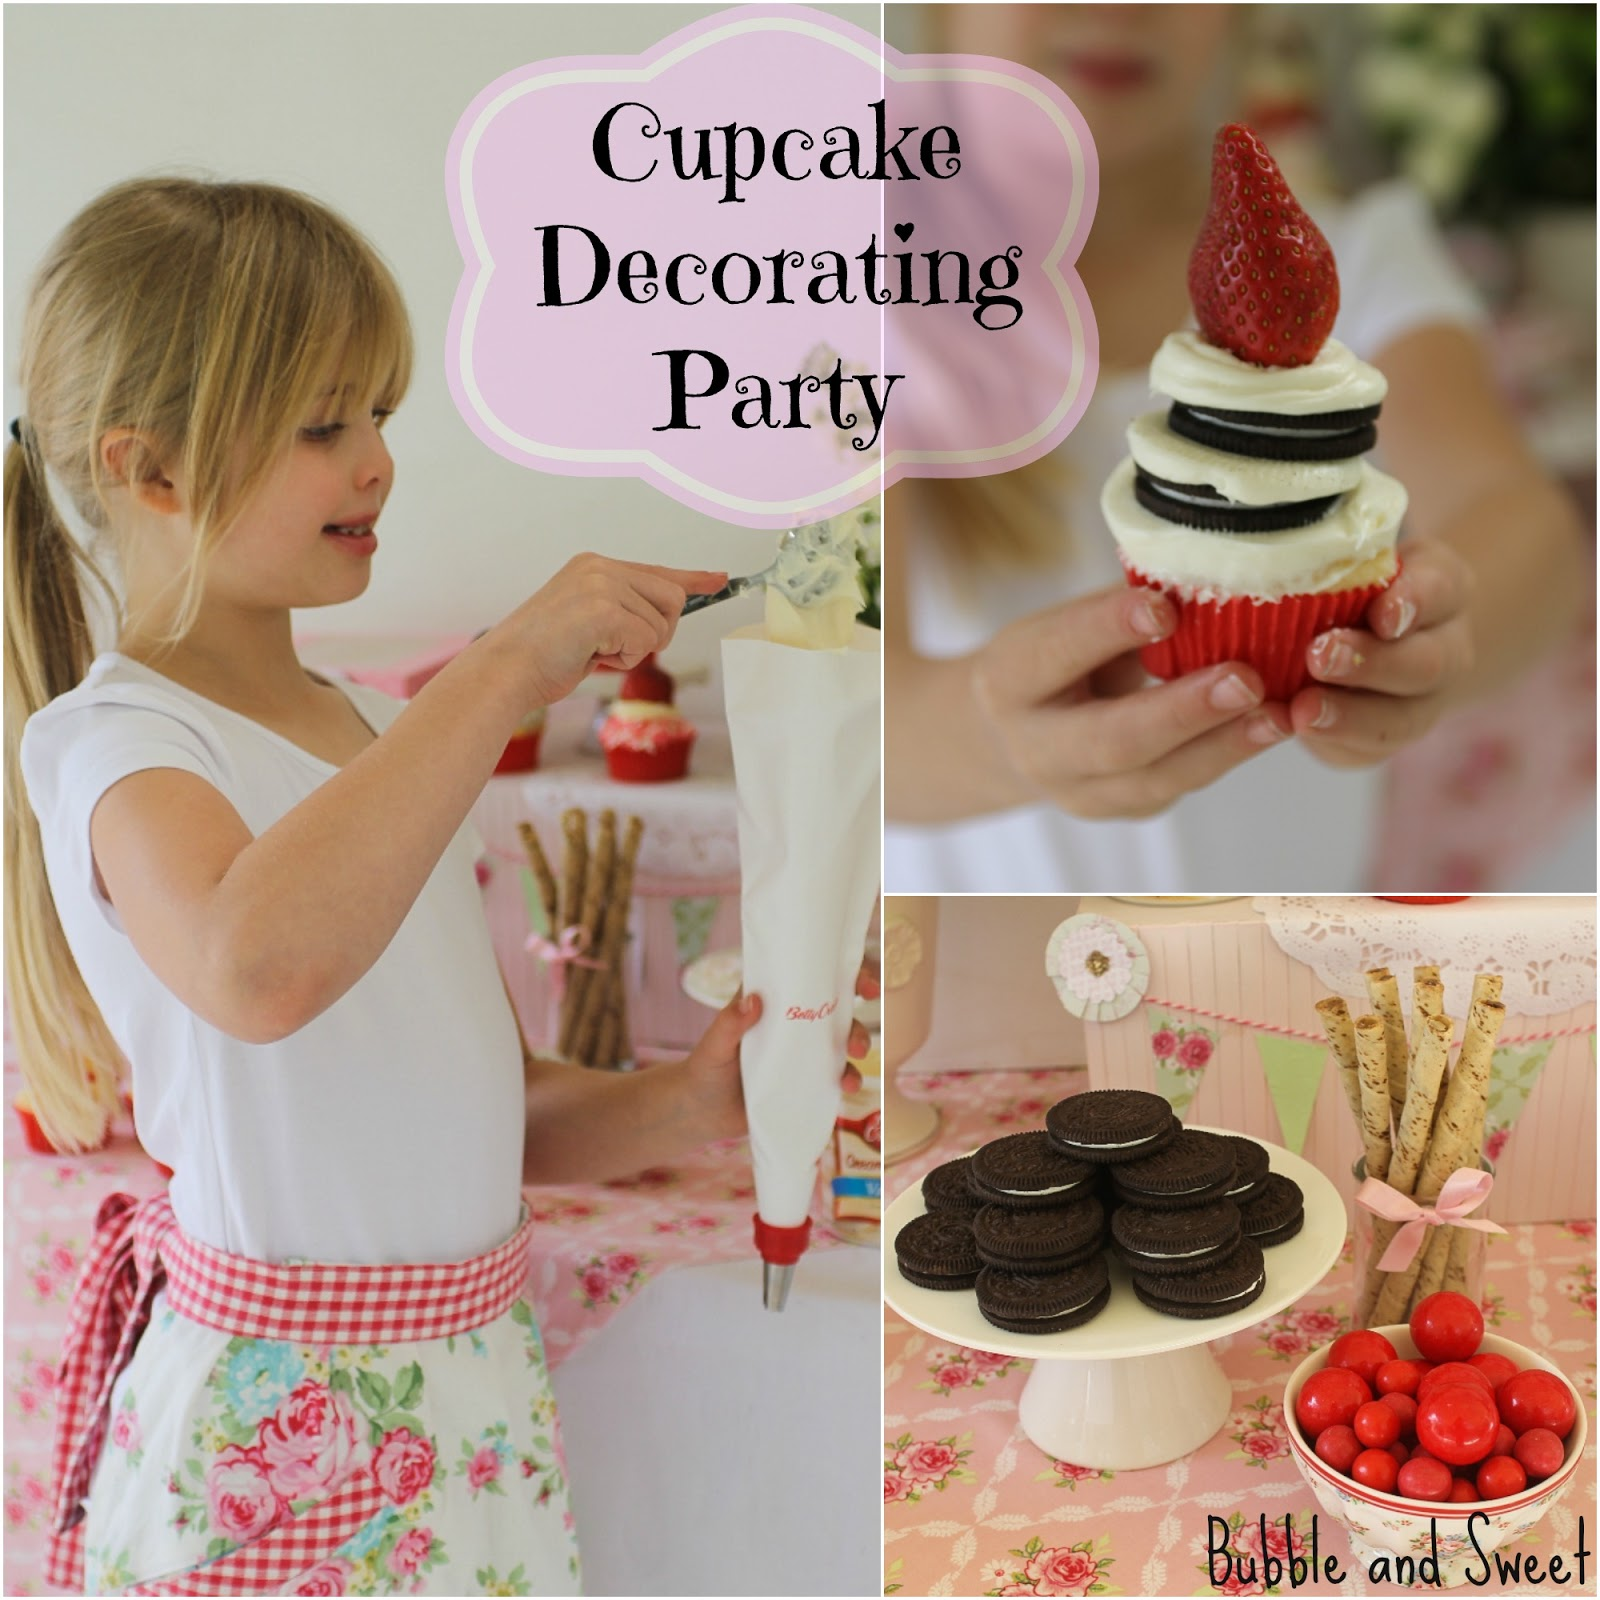 ... Host a Cupcake Decorating Birthday Party - Lillis 9th Birthday Party